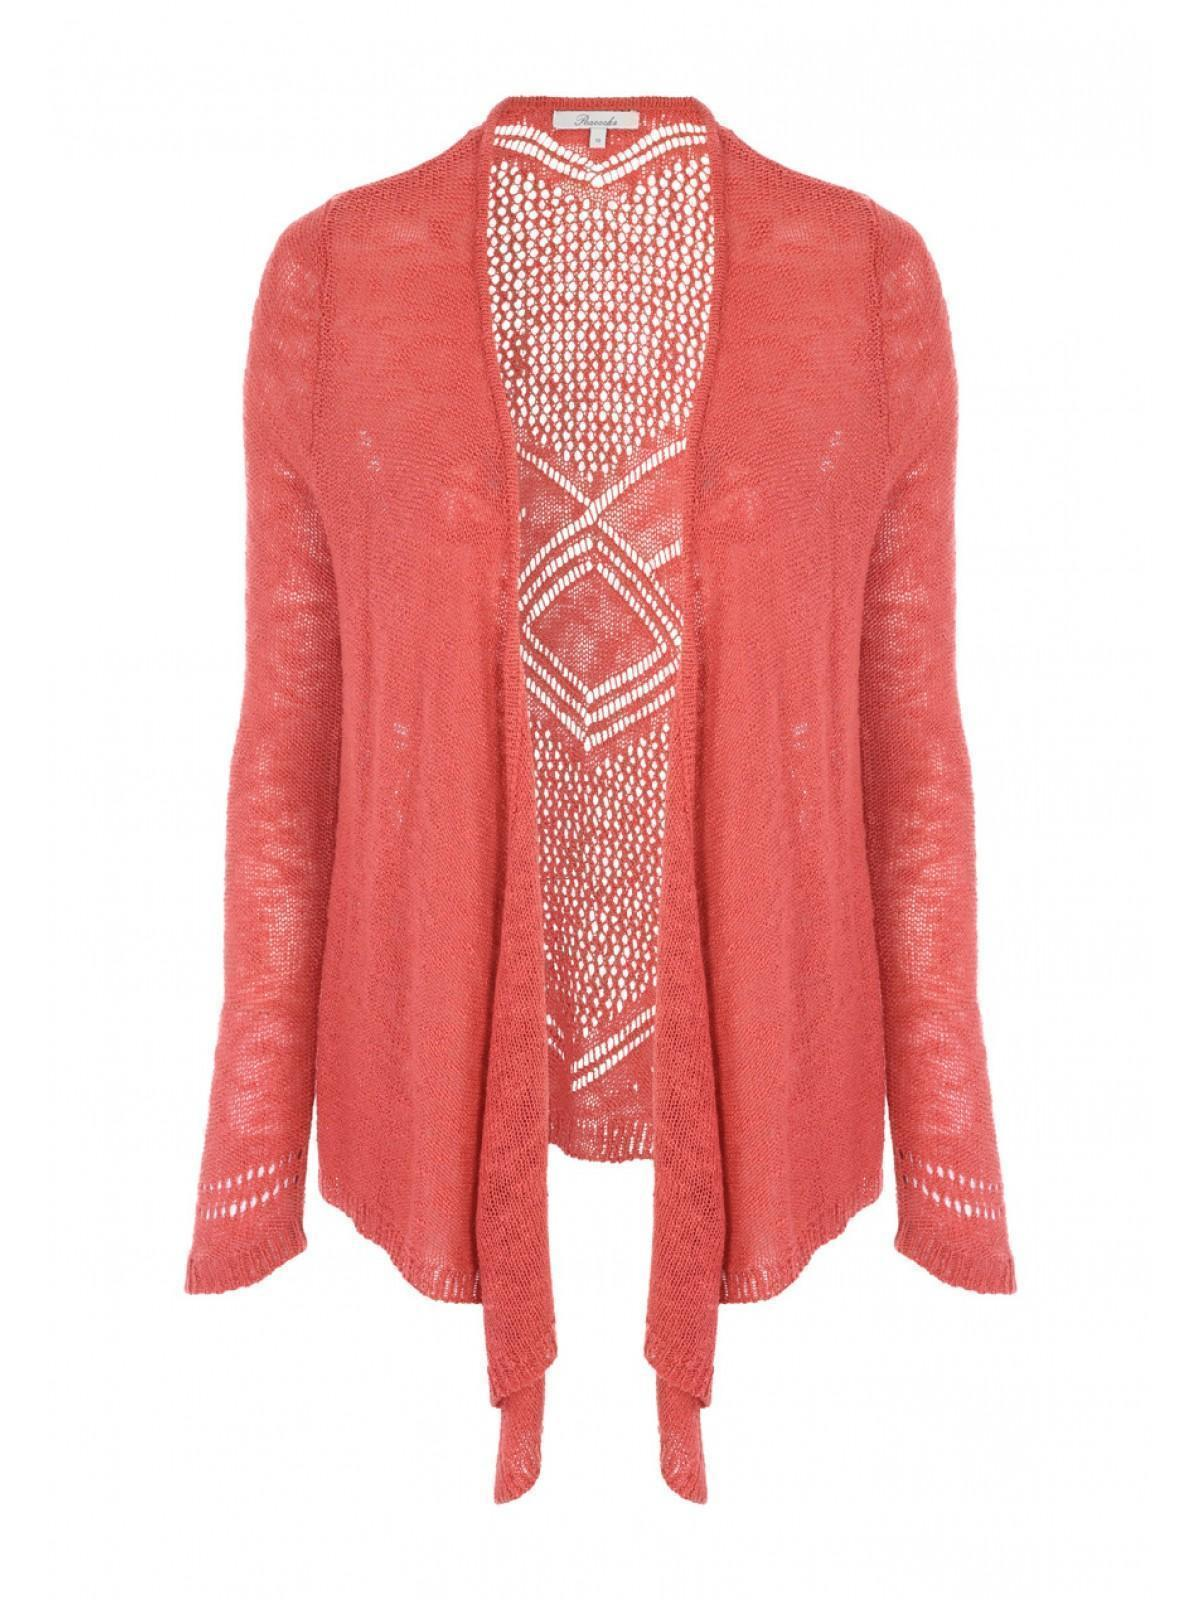 Womens Orange Waterfall Cardigan | Peacocks